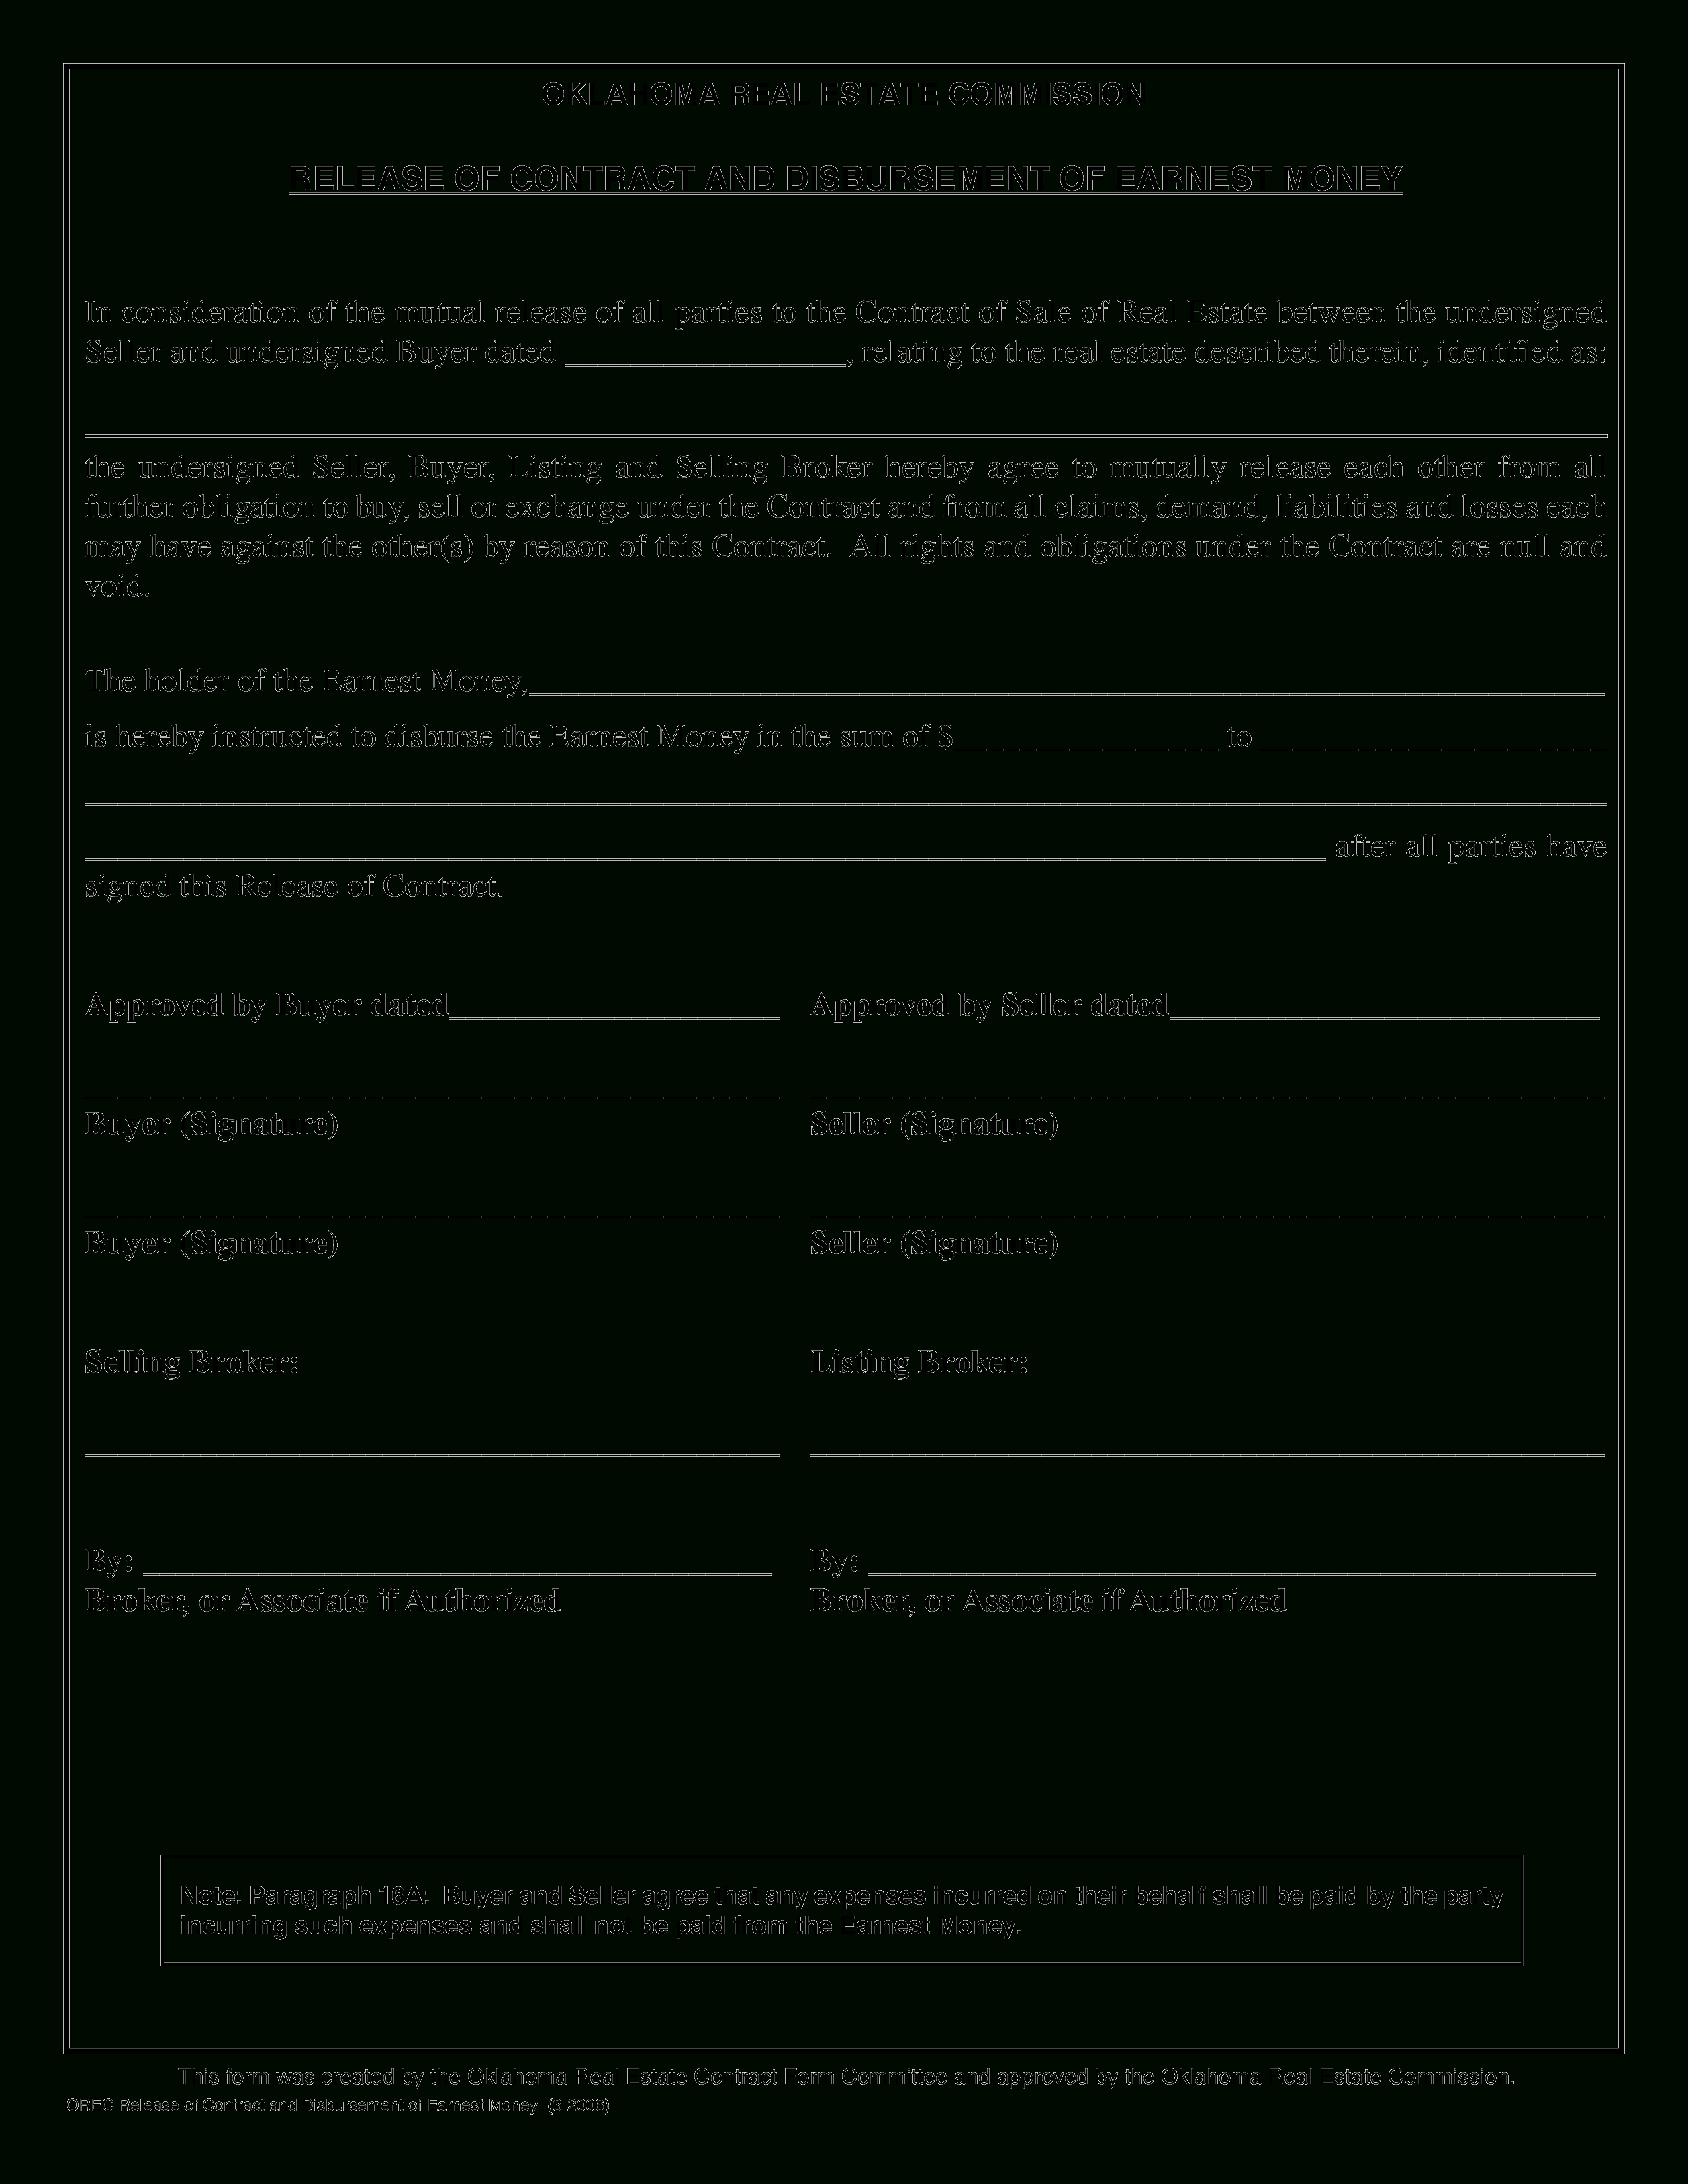 Free Real Estate Contract Release Form | Templates At - Free Printable Real Estate Contracts